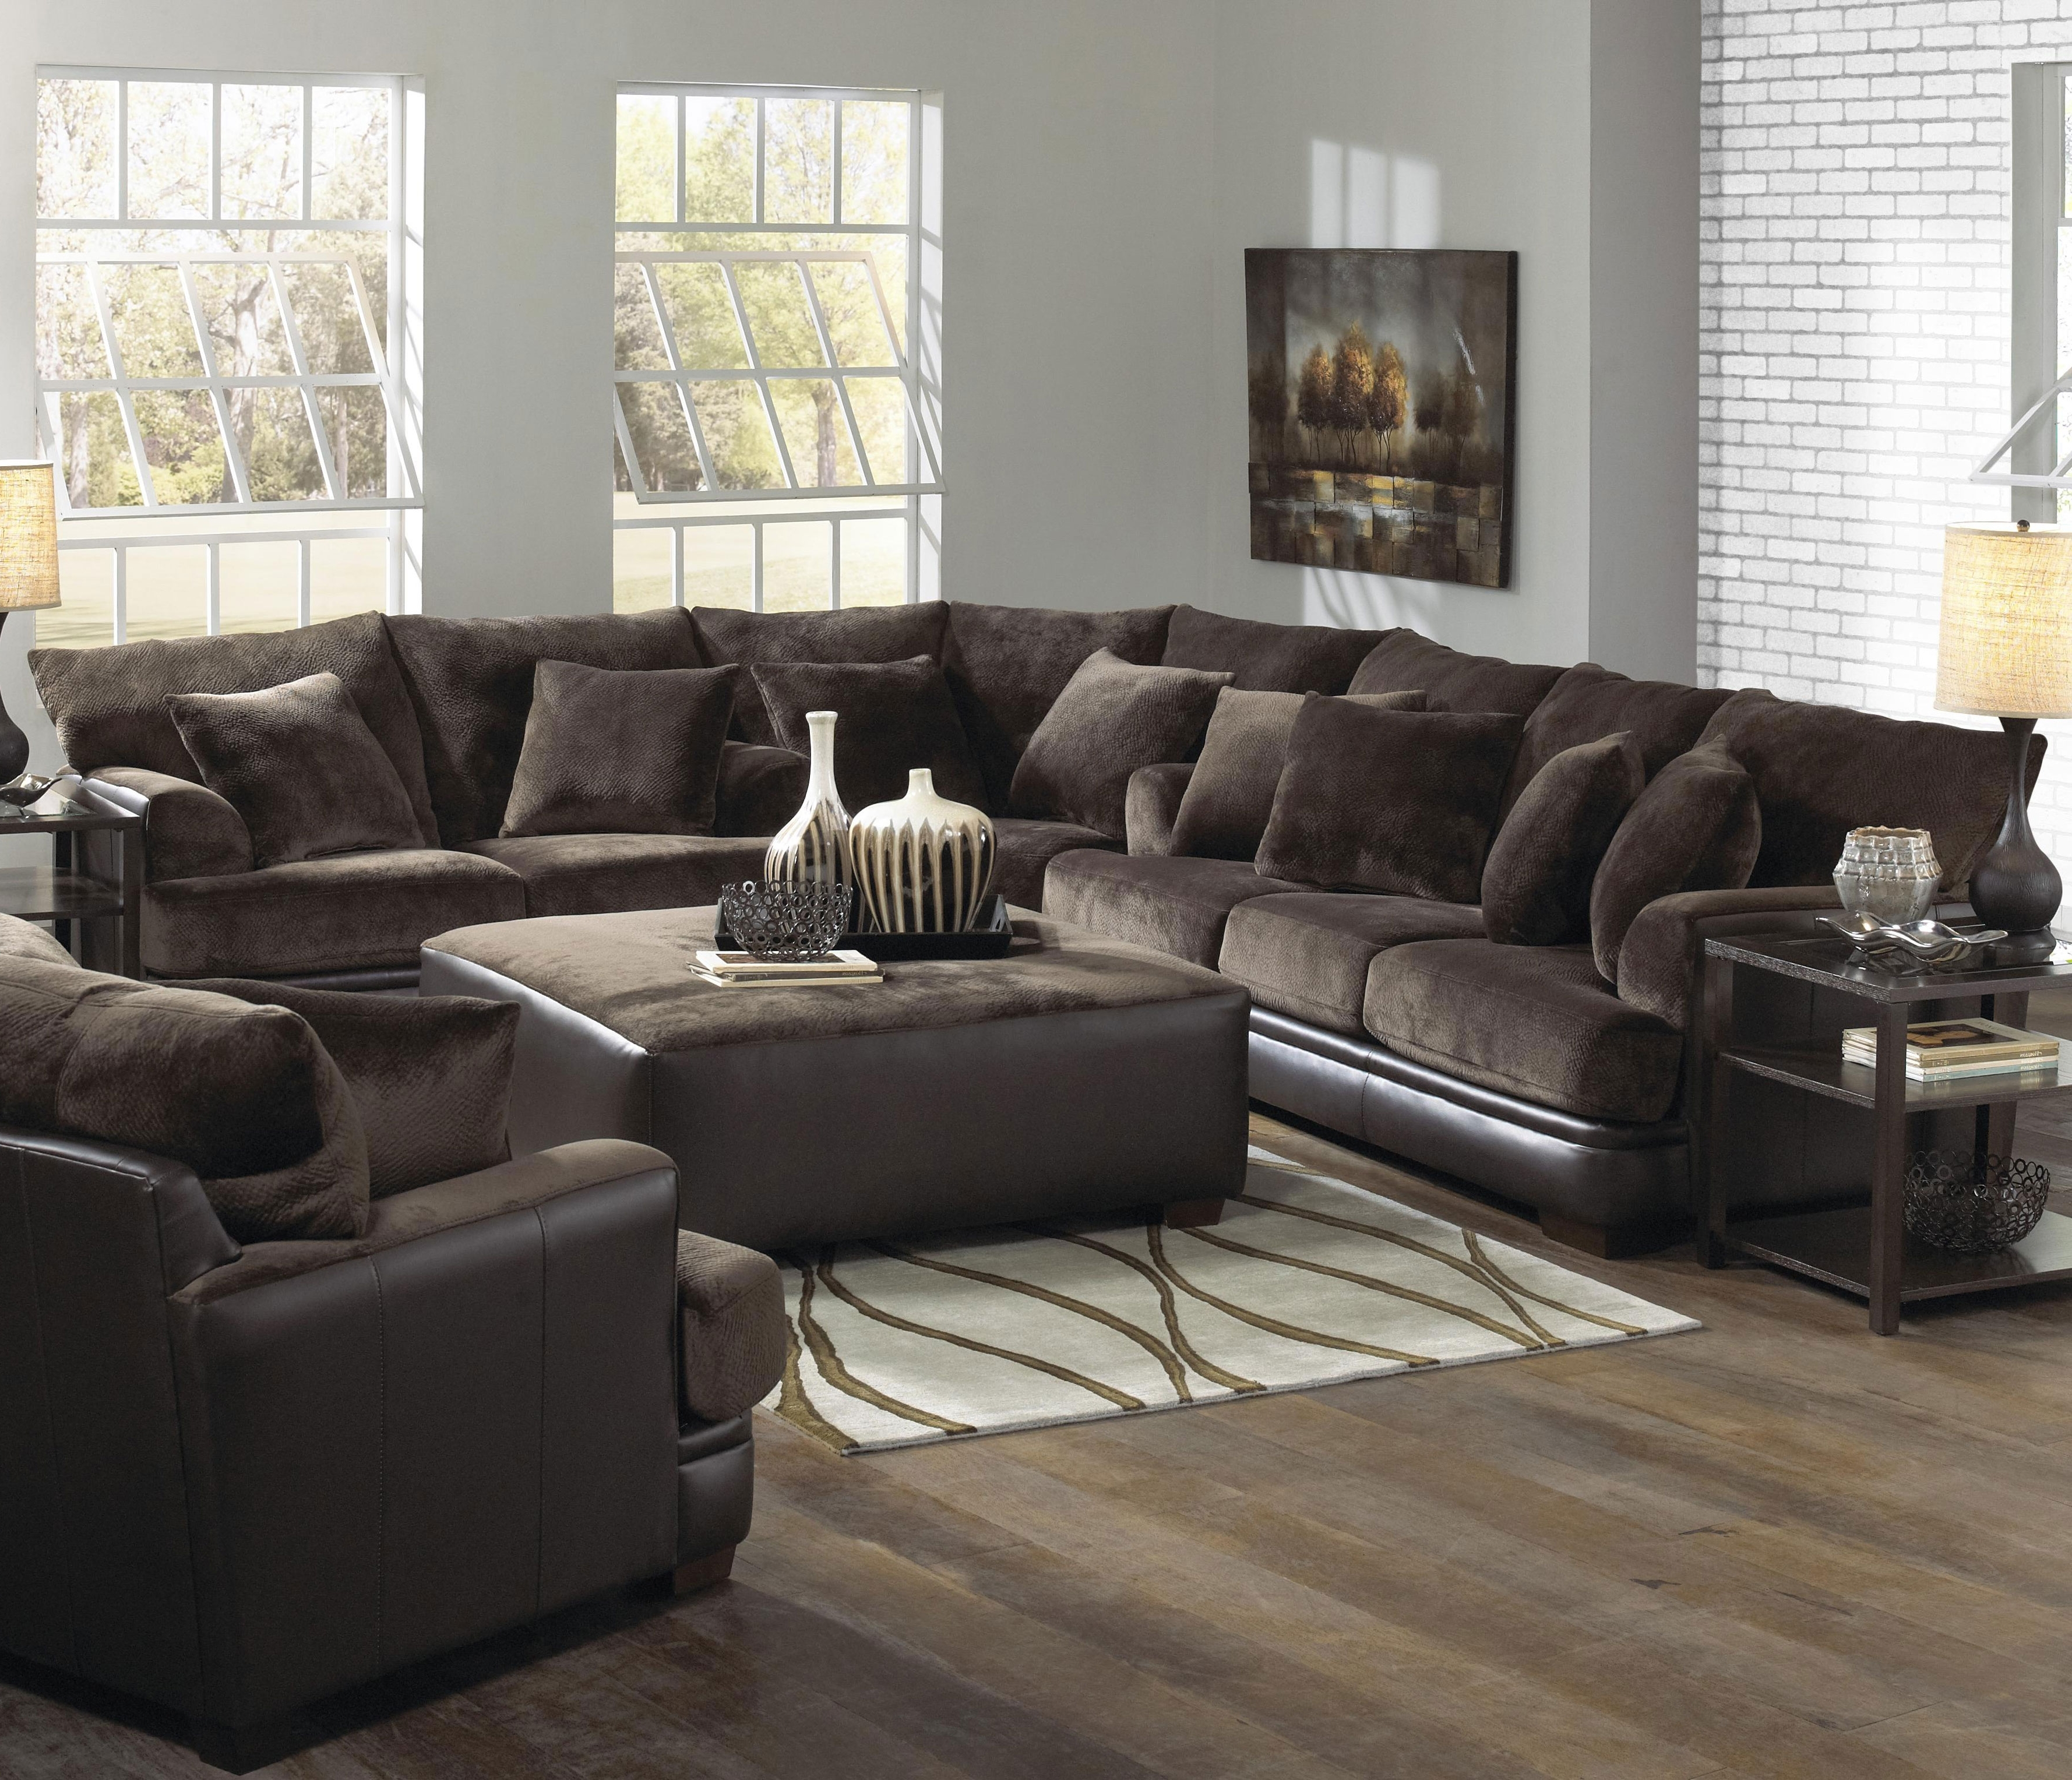 Recent Sectional Sofa: The Best Design C Shaped Sofa Sectional C Shaped In C Shaped Sofas (View 8 of 15)